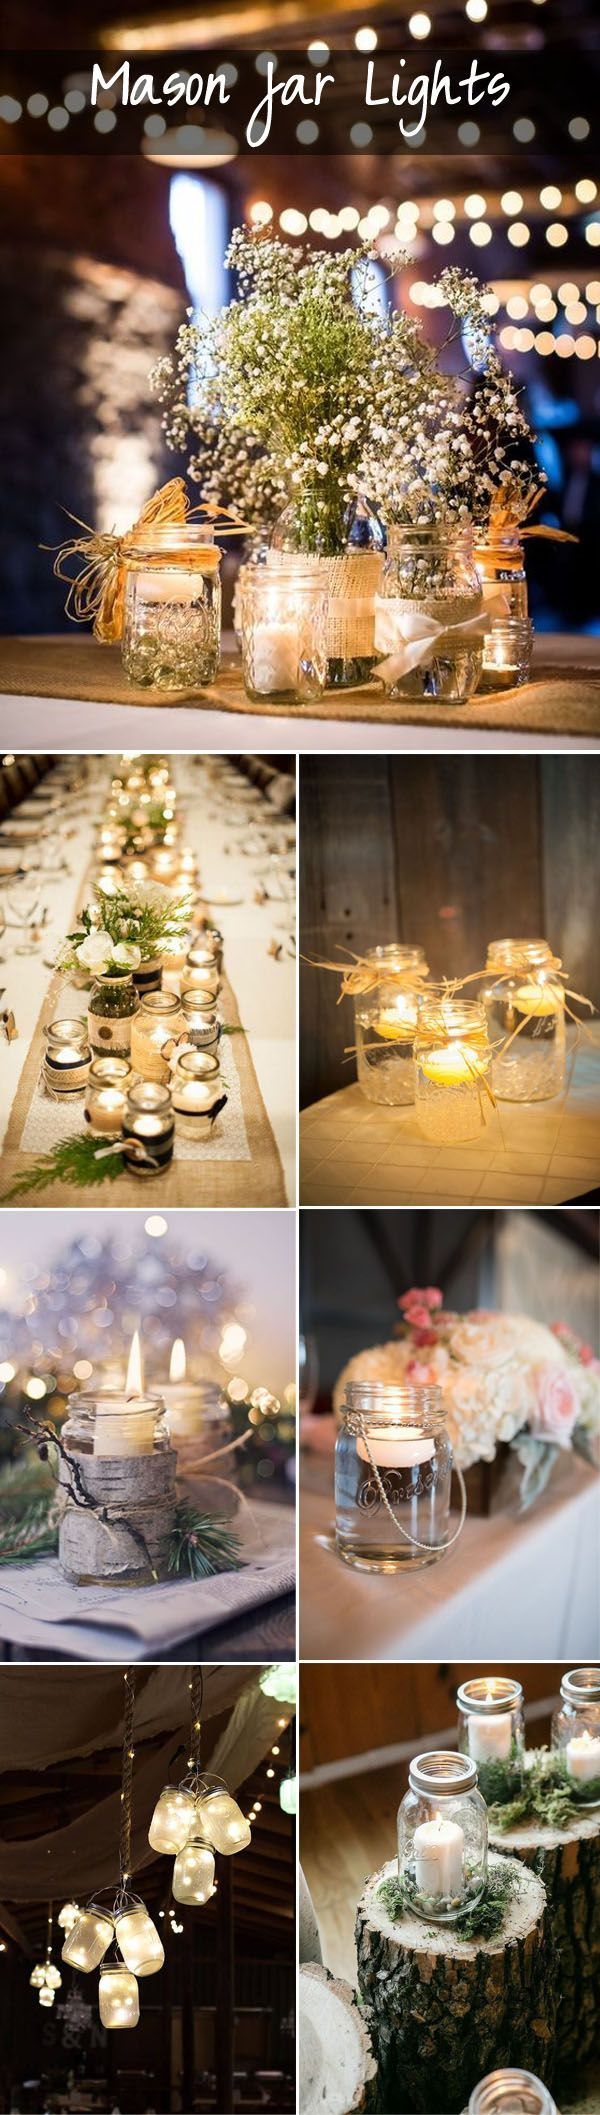 50 Best Rustic Wedding Ideas With Mason Jars